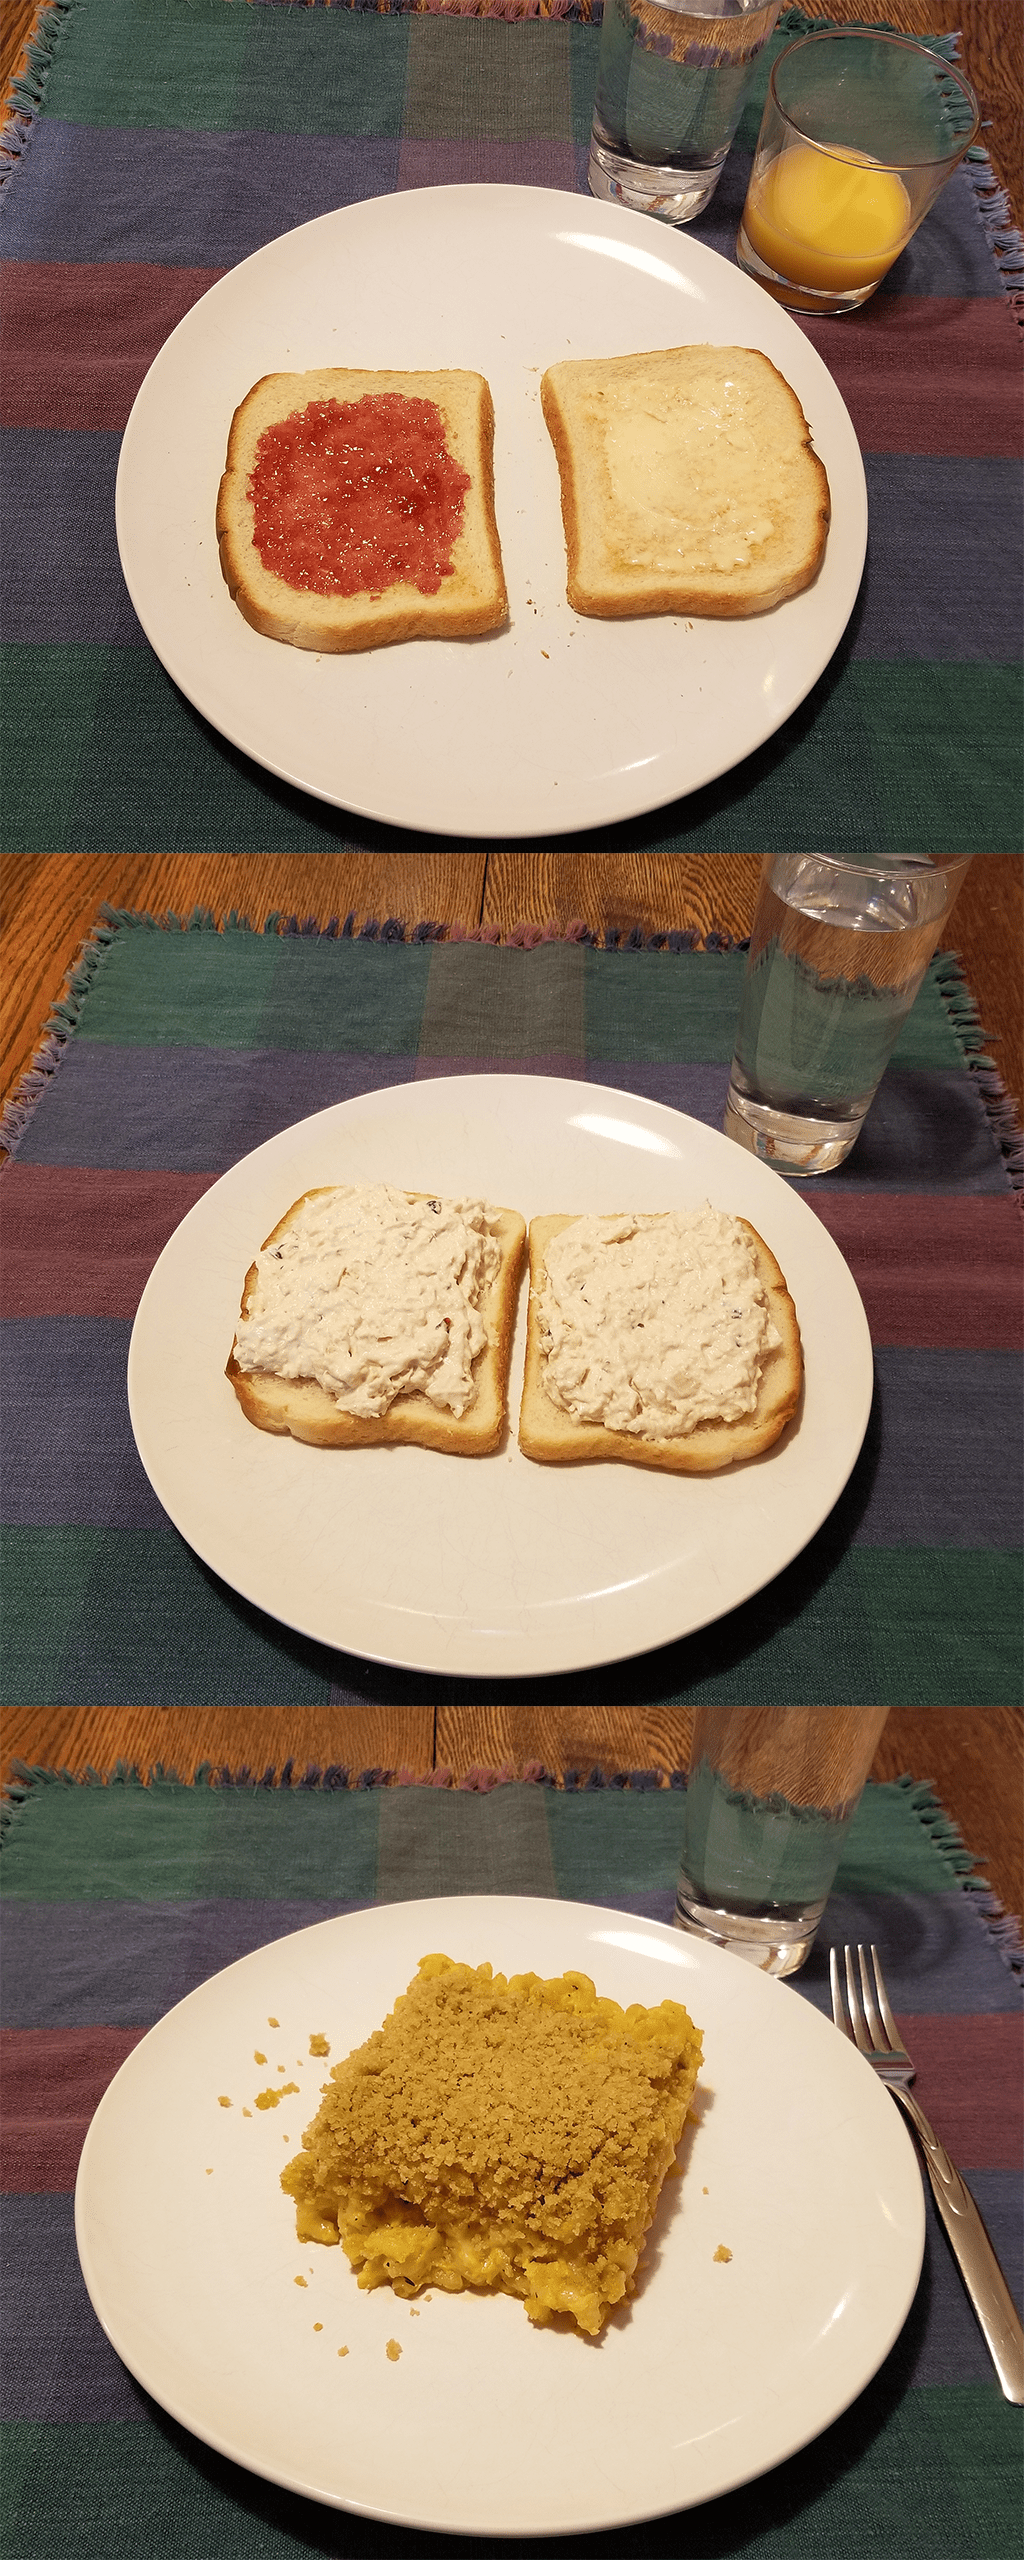 Day's Meals.png